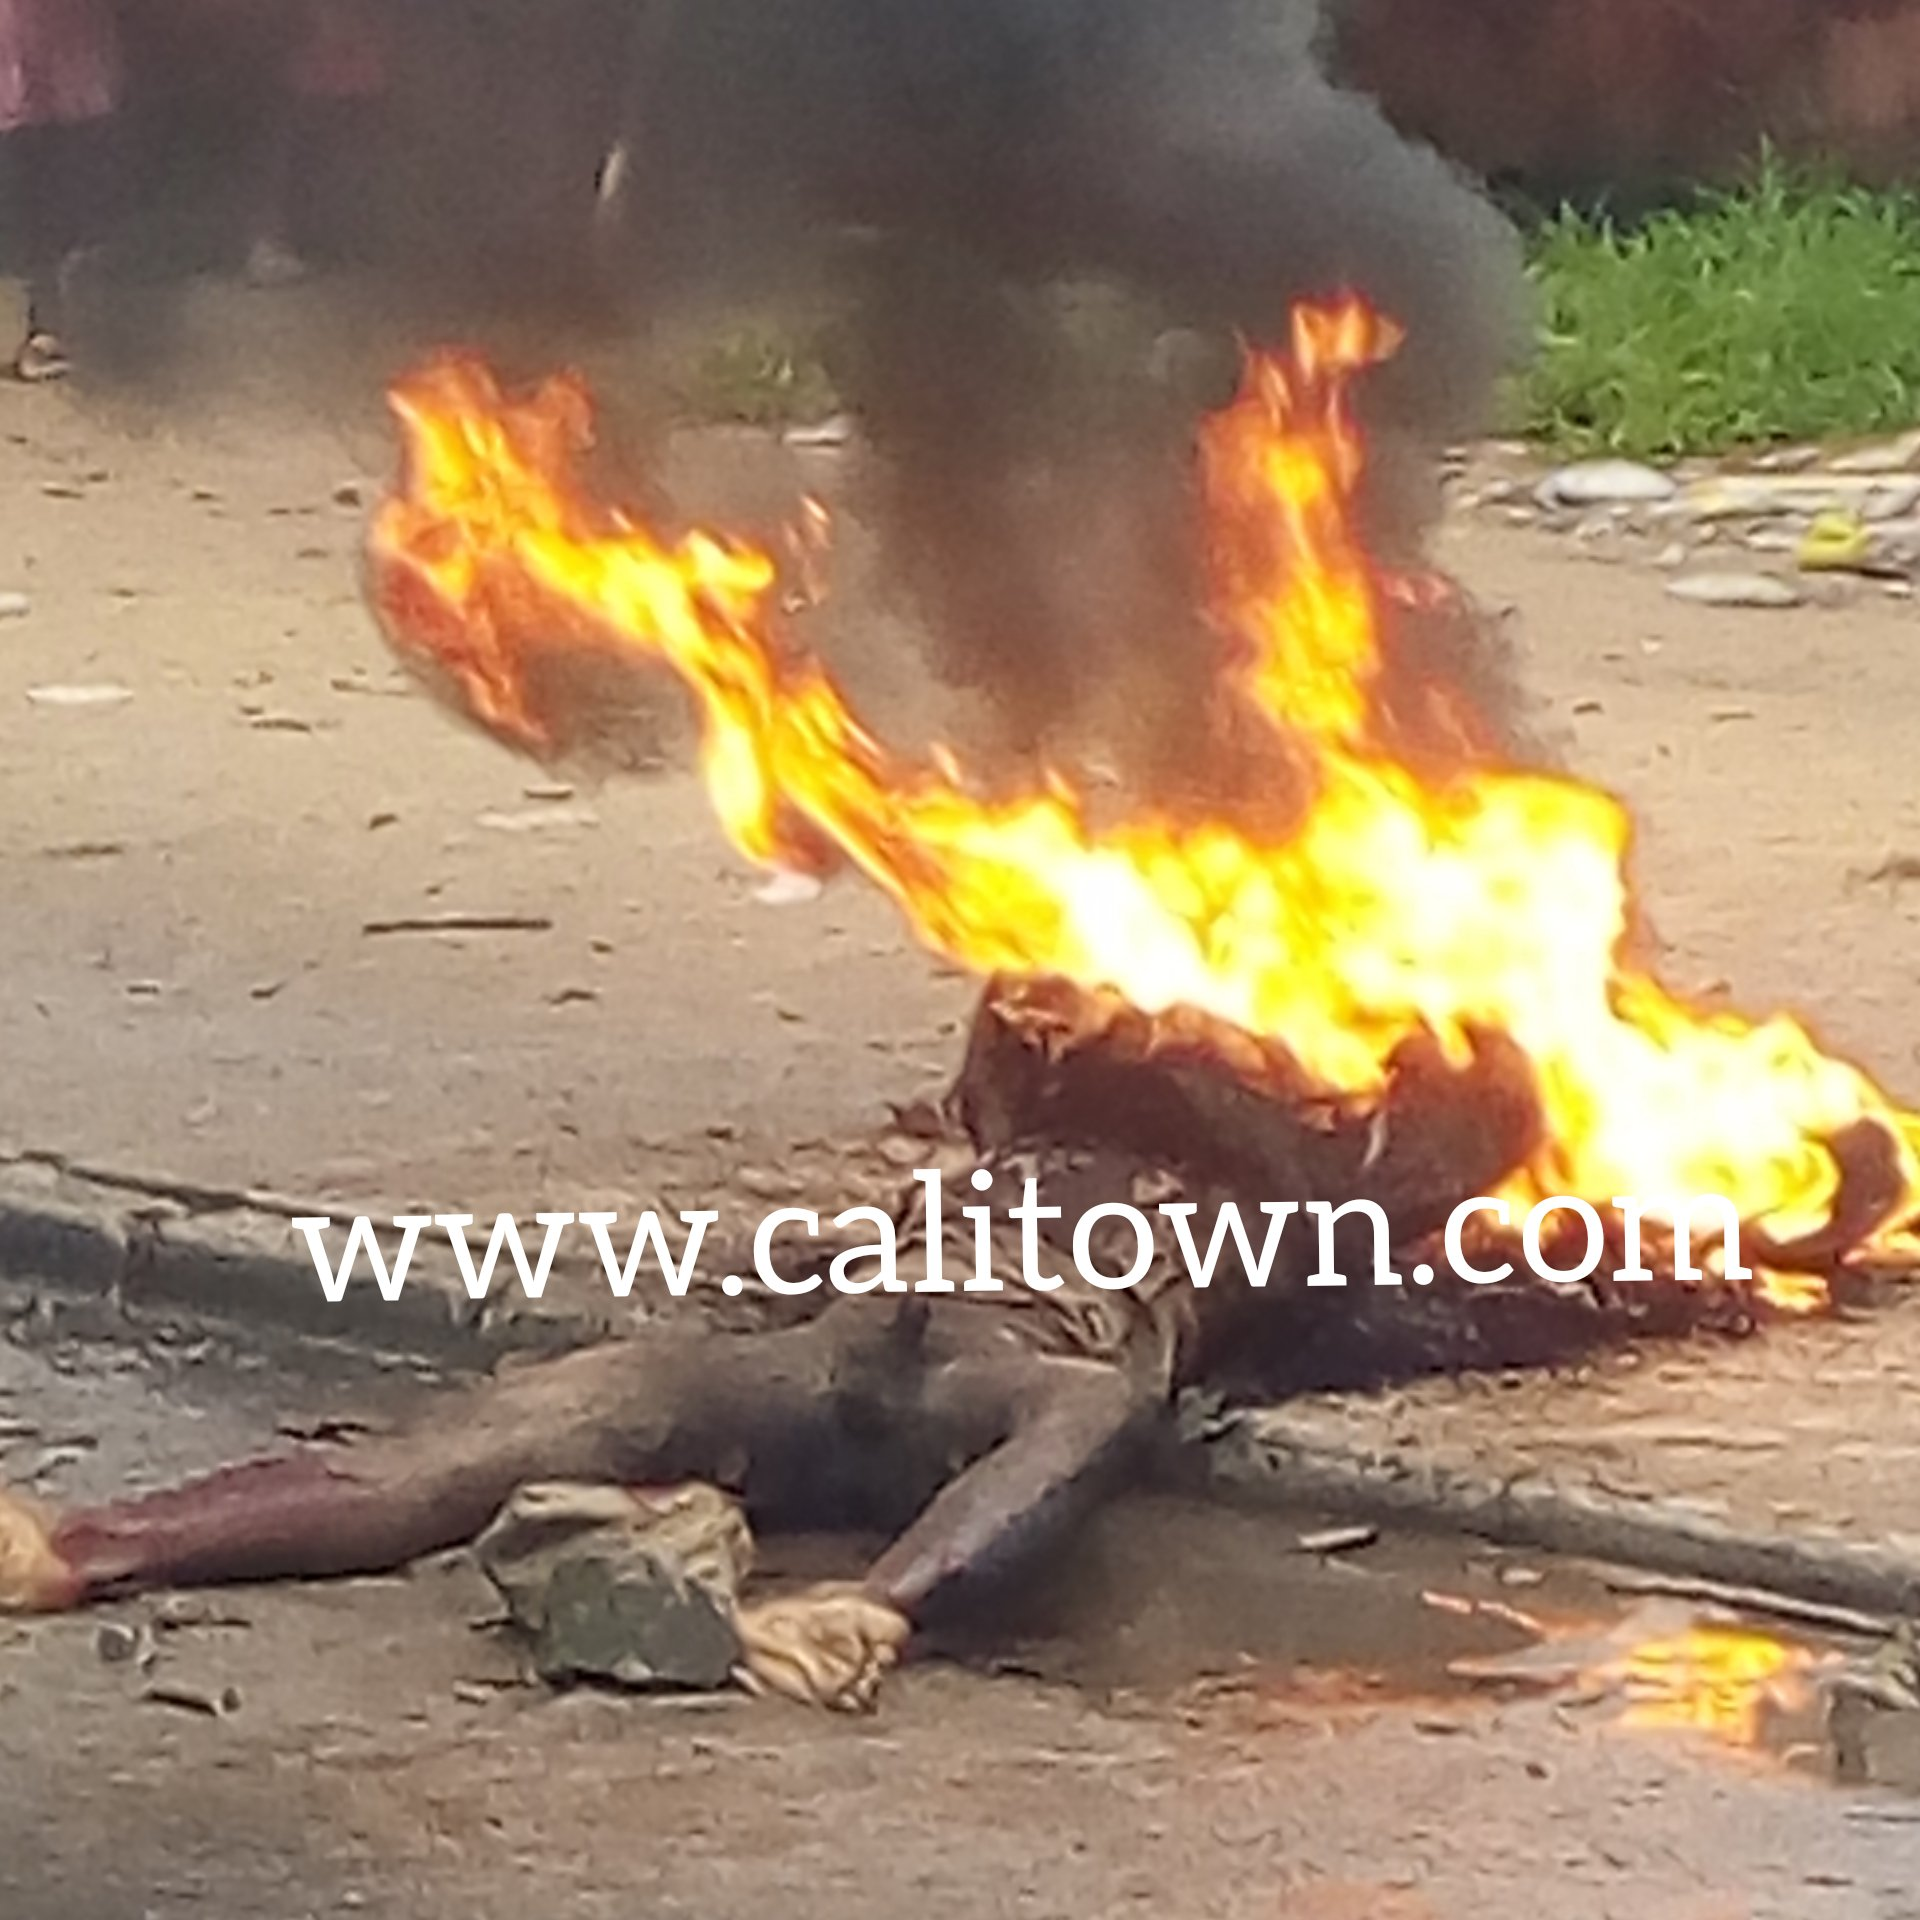 BREAKING: Angry Mob Sets Man Ablaze In Calabar